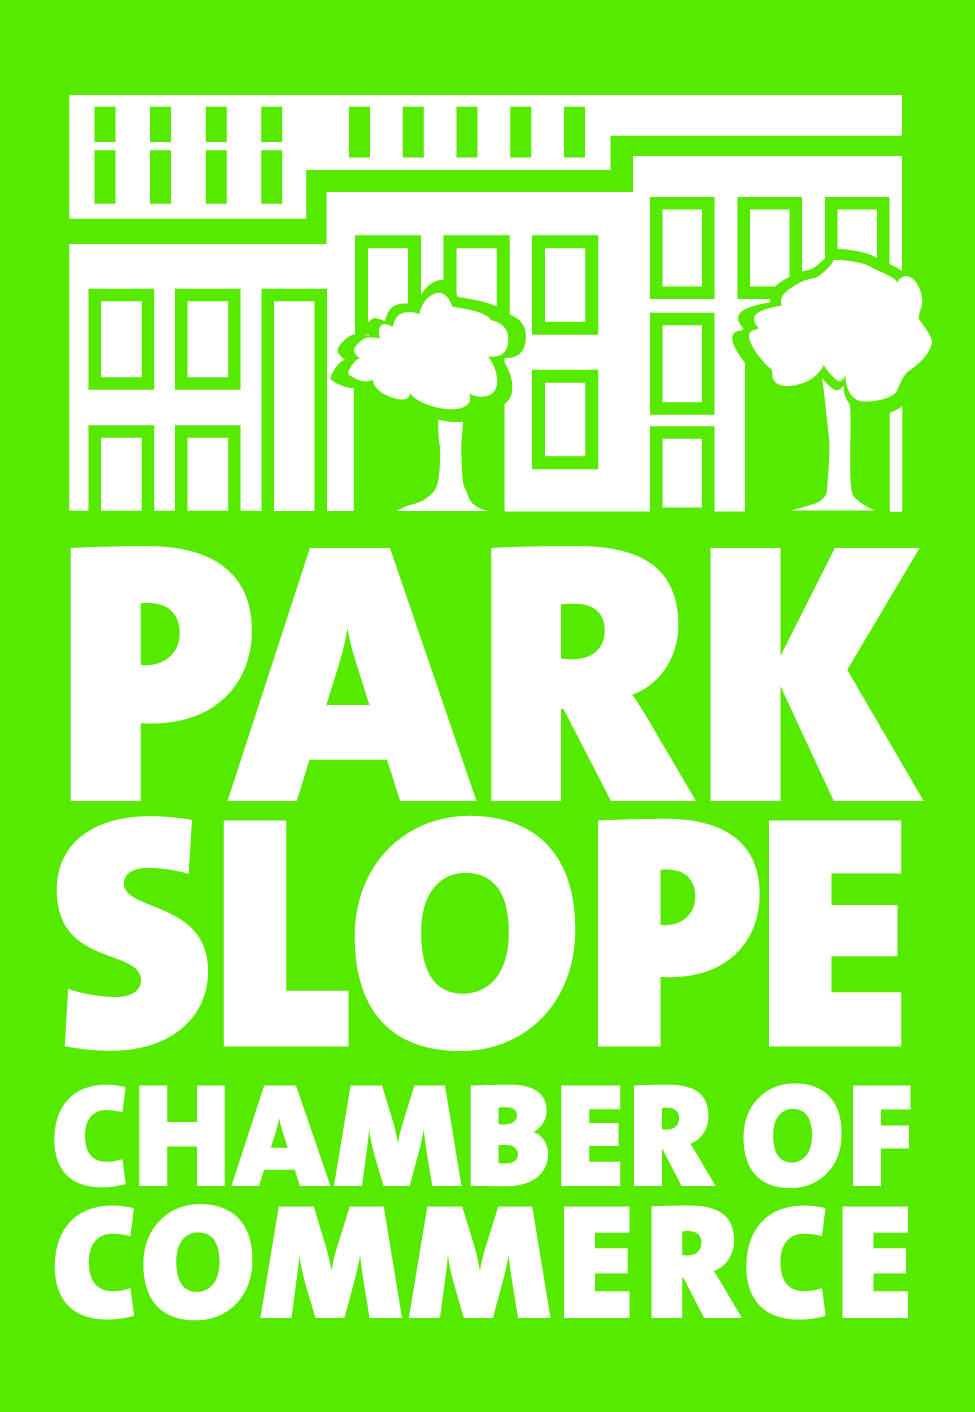 Park Slope Chamber of Commerce